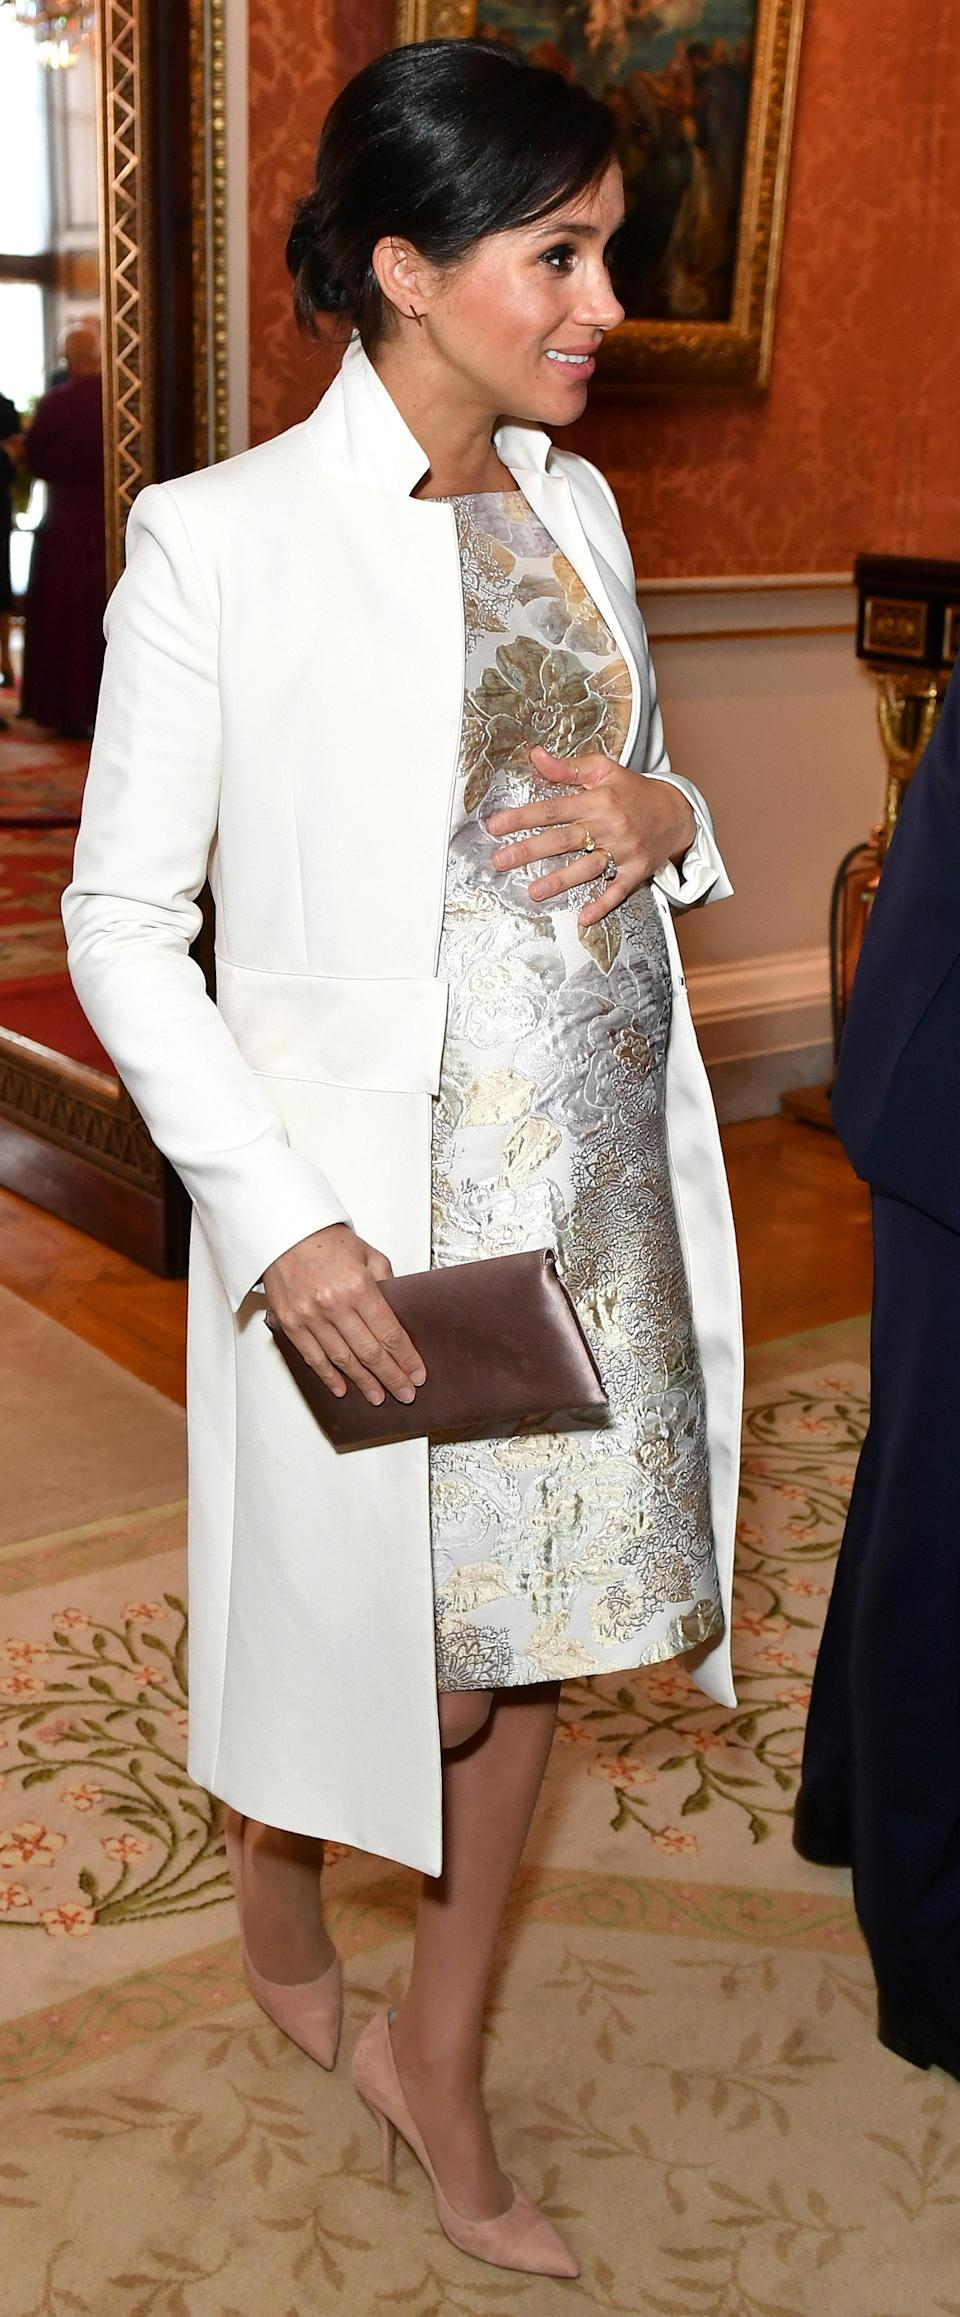 To mark Charles' 50th anniversary as the Prince of Wales, Meghan donned her Amanda Wakeley 'Crombie' coat with a floral brocade dress, her Wilbur and Gussie Oyster Clutch and her Paul Andrews pumps [Photo: Getty]